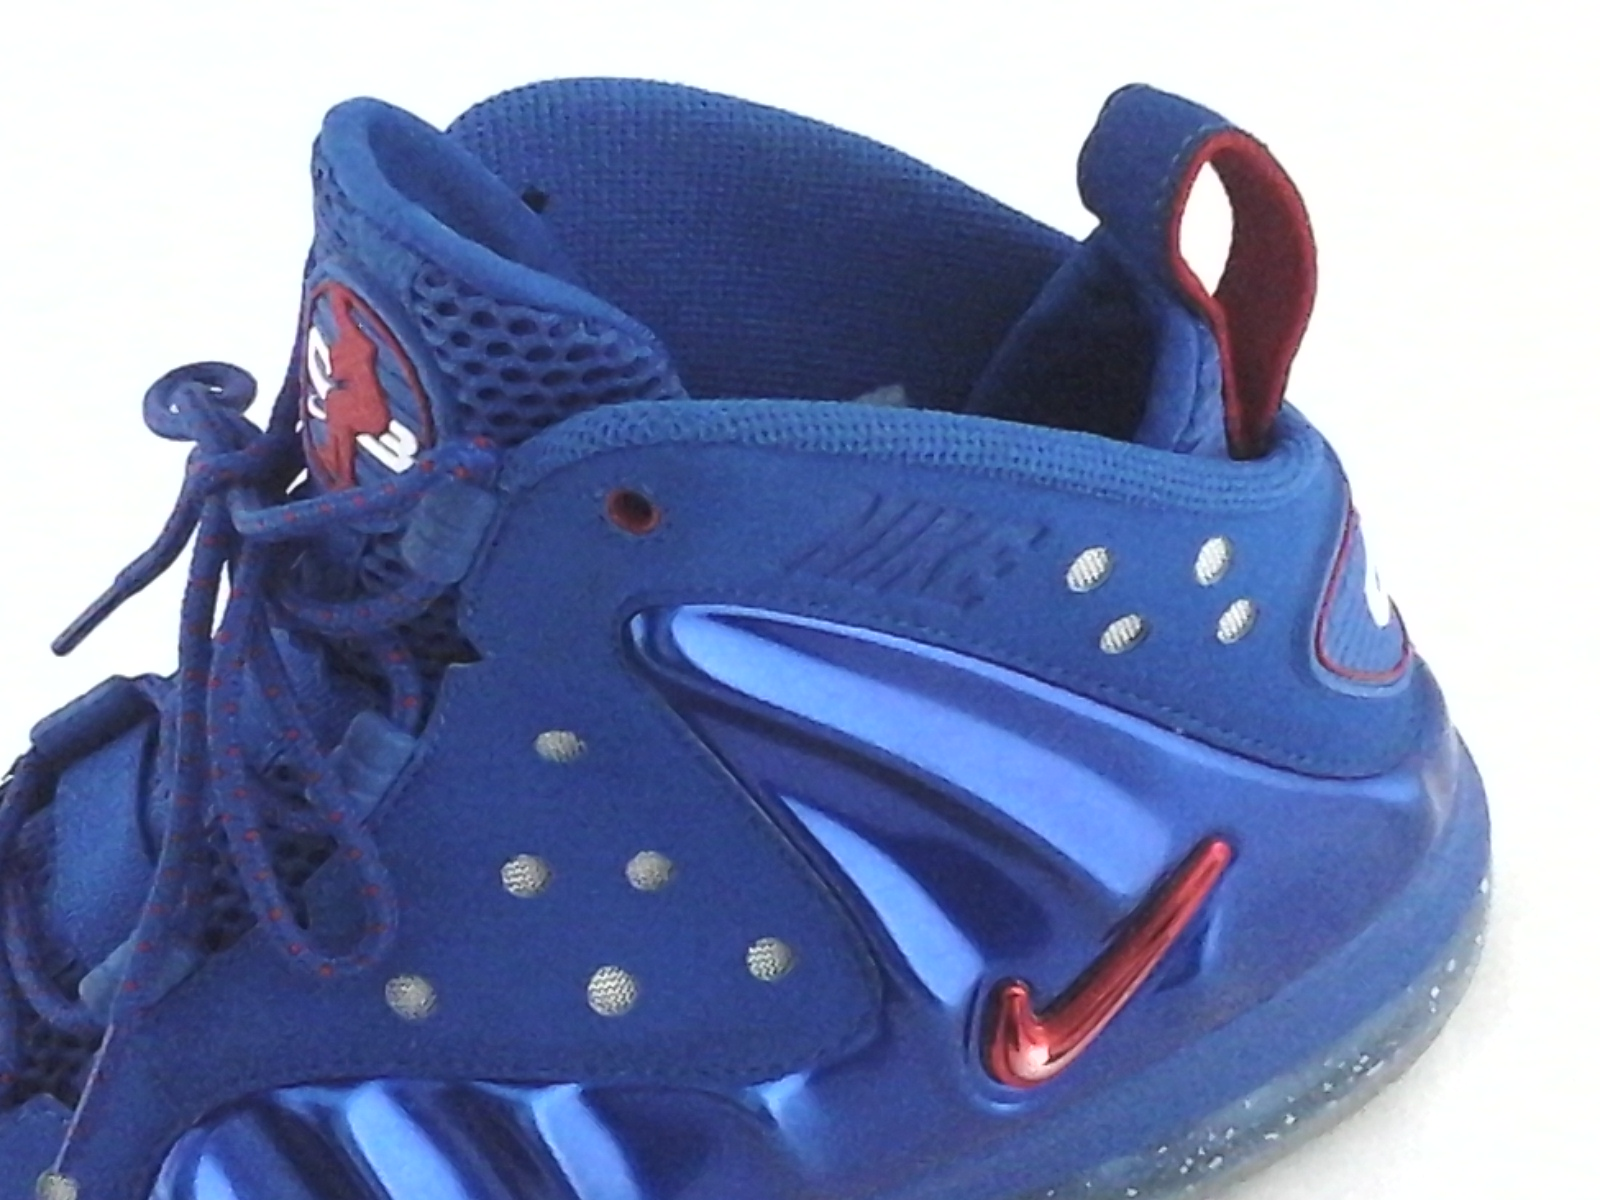 8fad76570395 Nike Posite Max Sixers 76ers Shoes BARKLEY Blue Red 555097-300 Mens US 9 EU  42.5